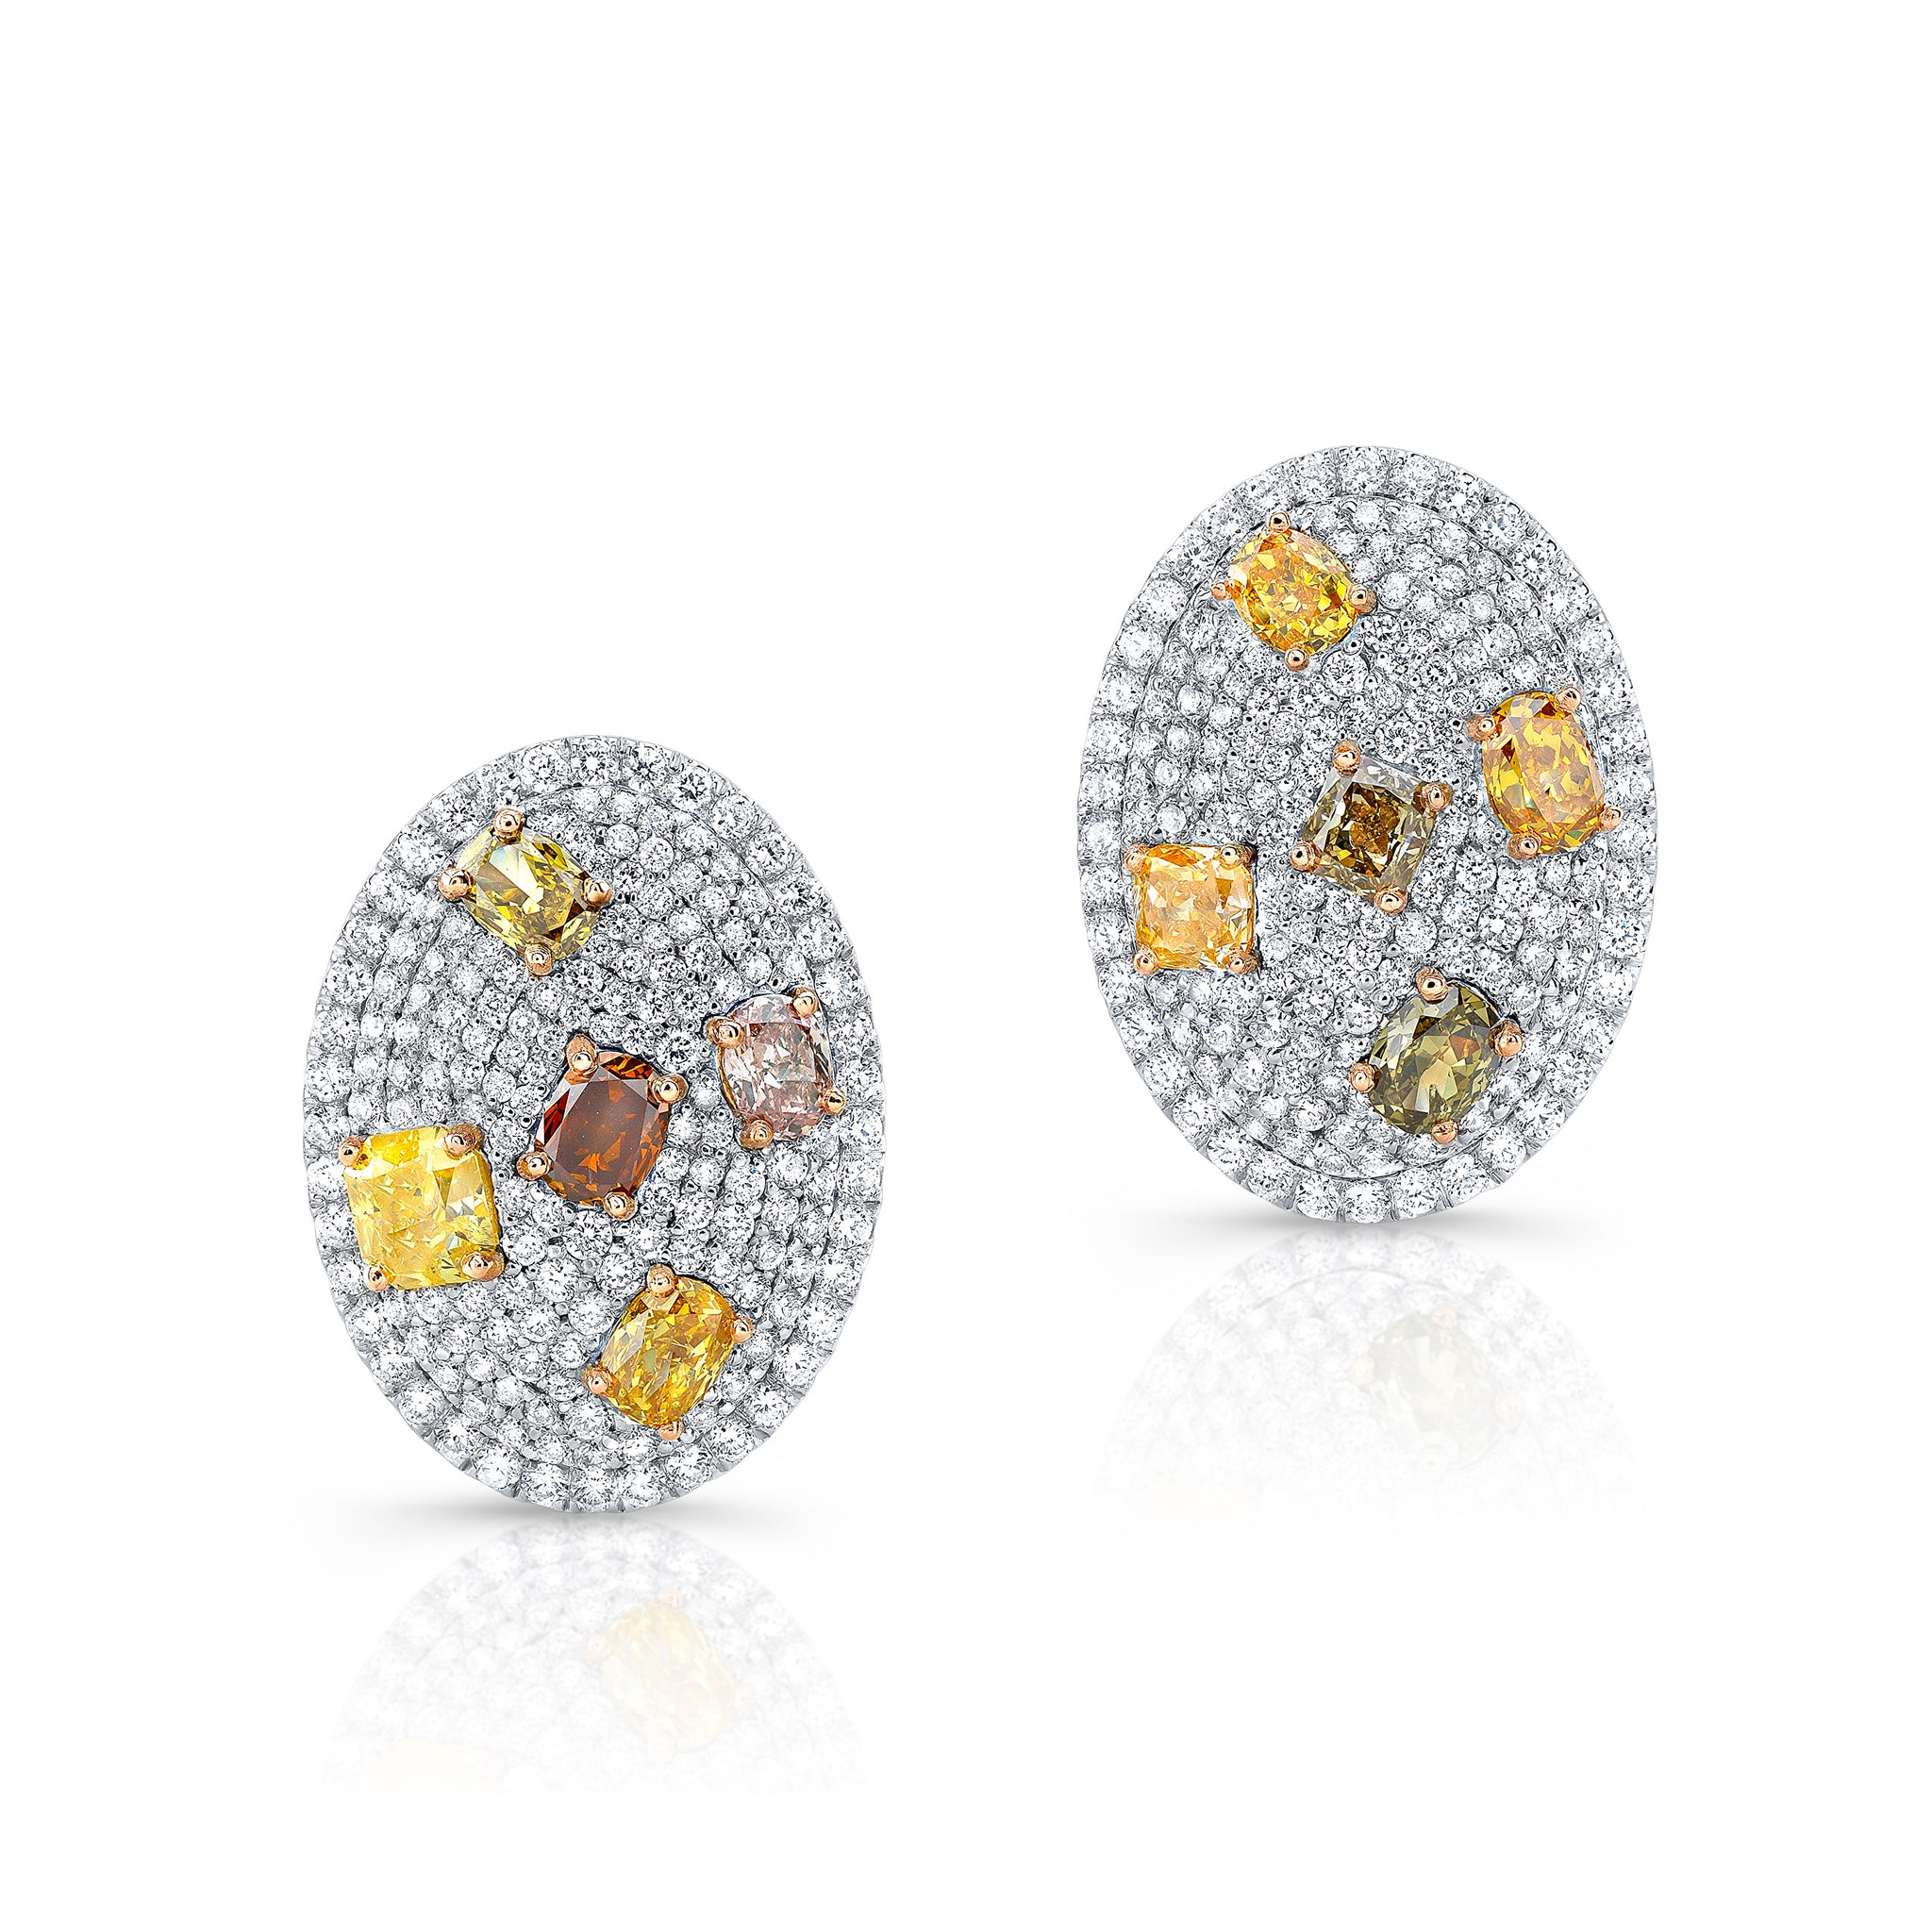 Bespoke Diamond Earrings, Natural Color Diamonds